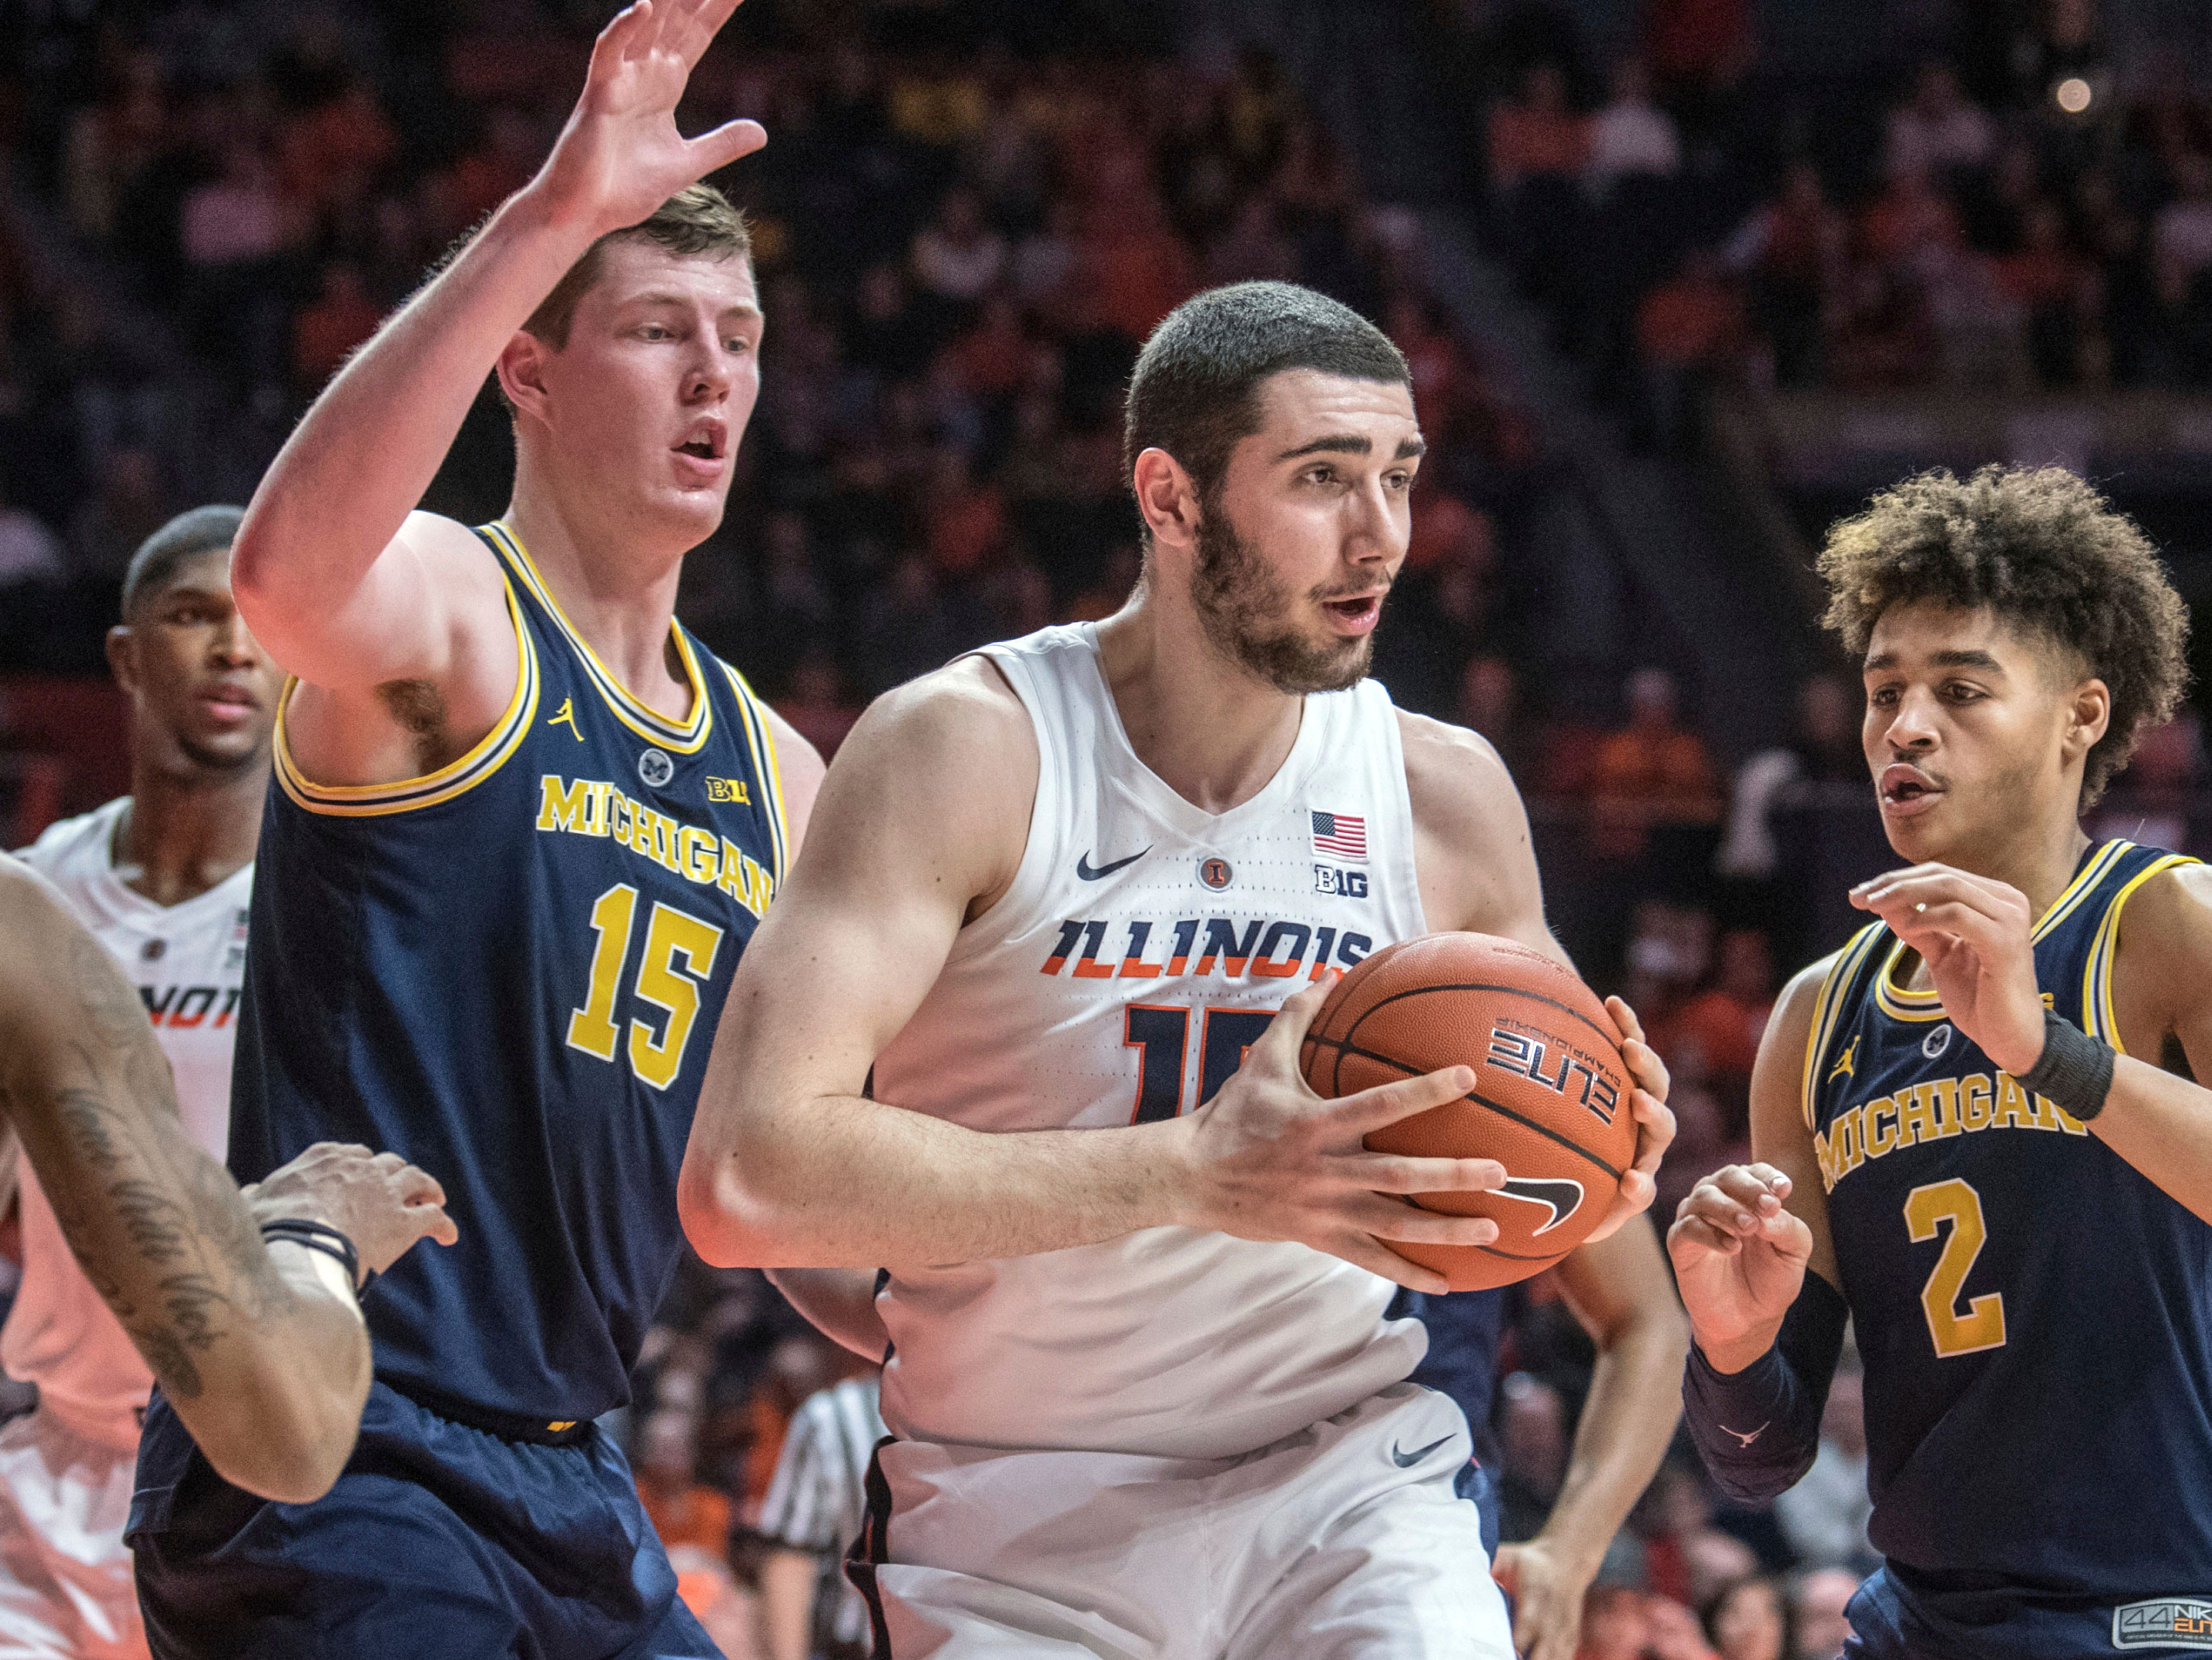 Illinois forward Giorgi Bezhanishvili (15) pulls down a rebound between Michigan center Jon Teske (15) and guard Jordan Poole (2) during the first half.